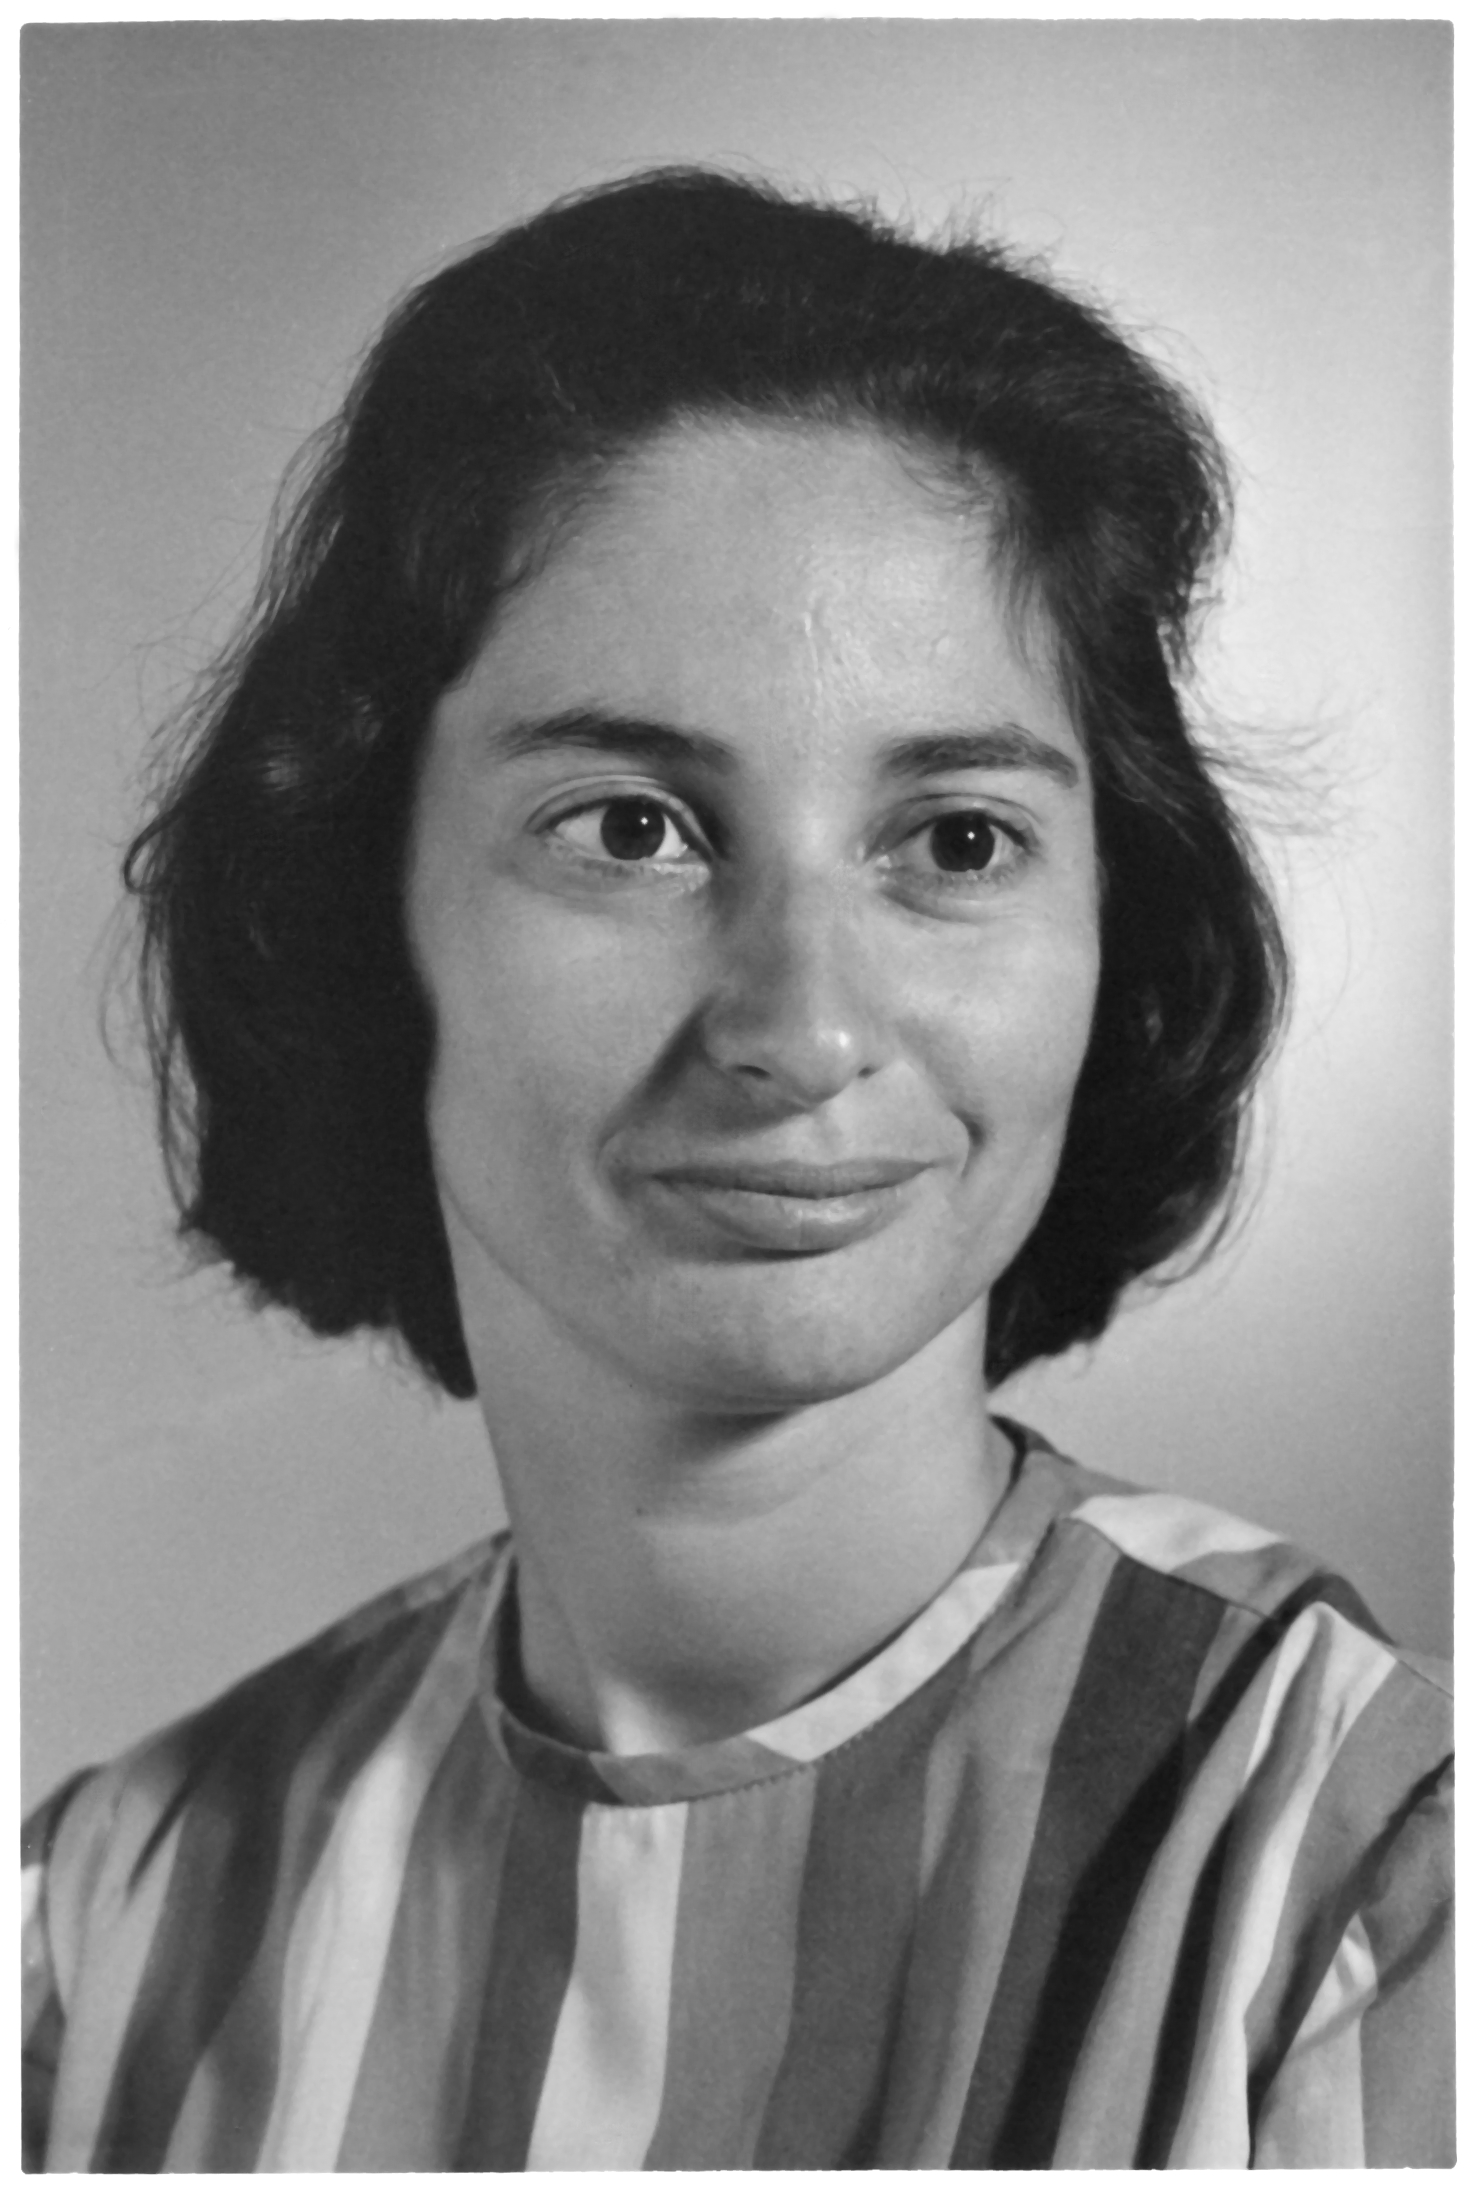 Black and white studio headshot photo of Deborah Dexter as a young faculty member.